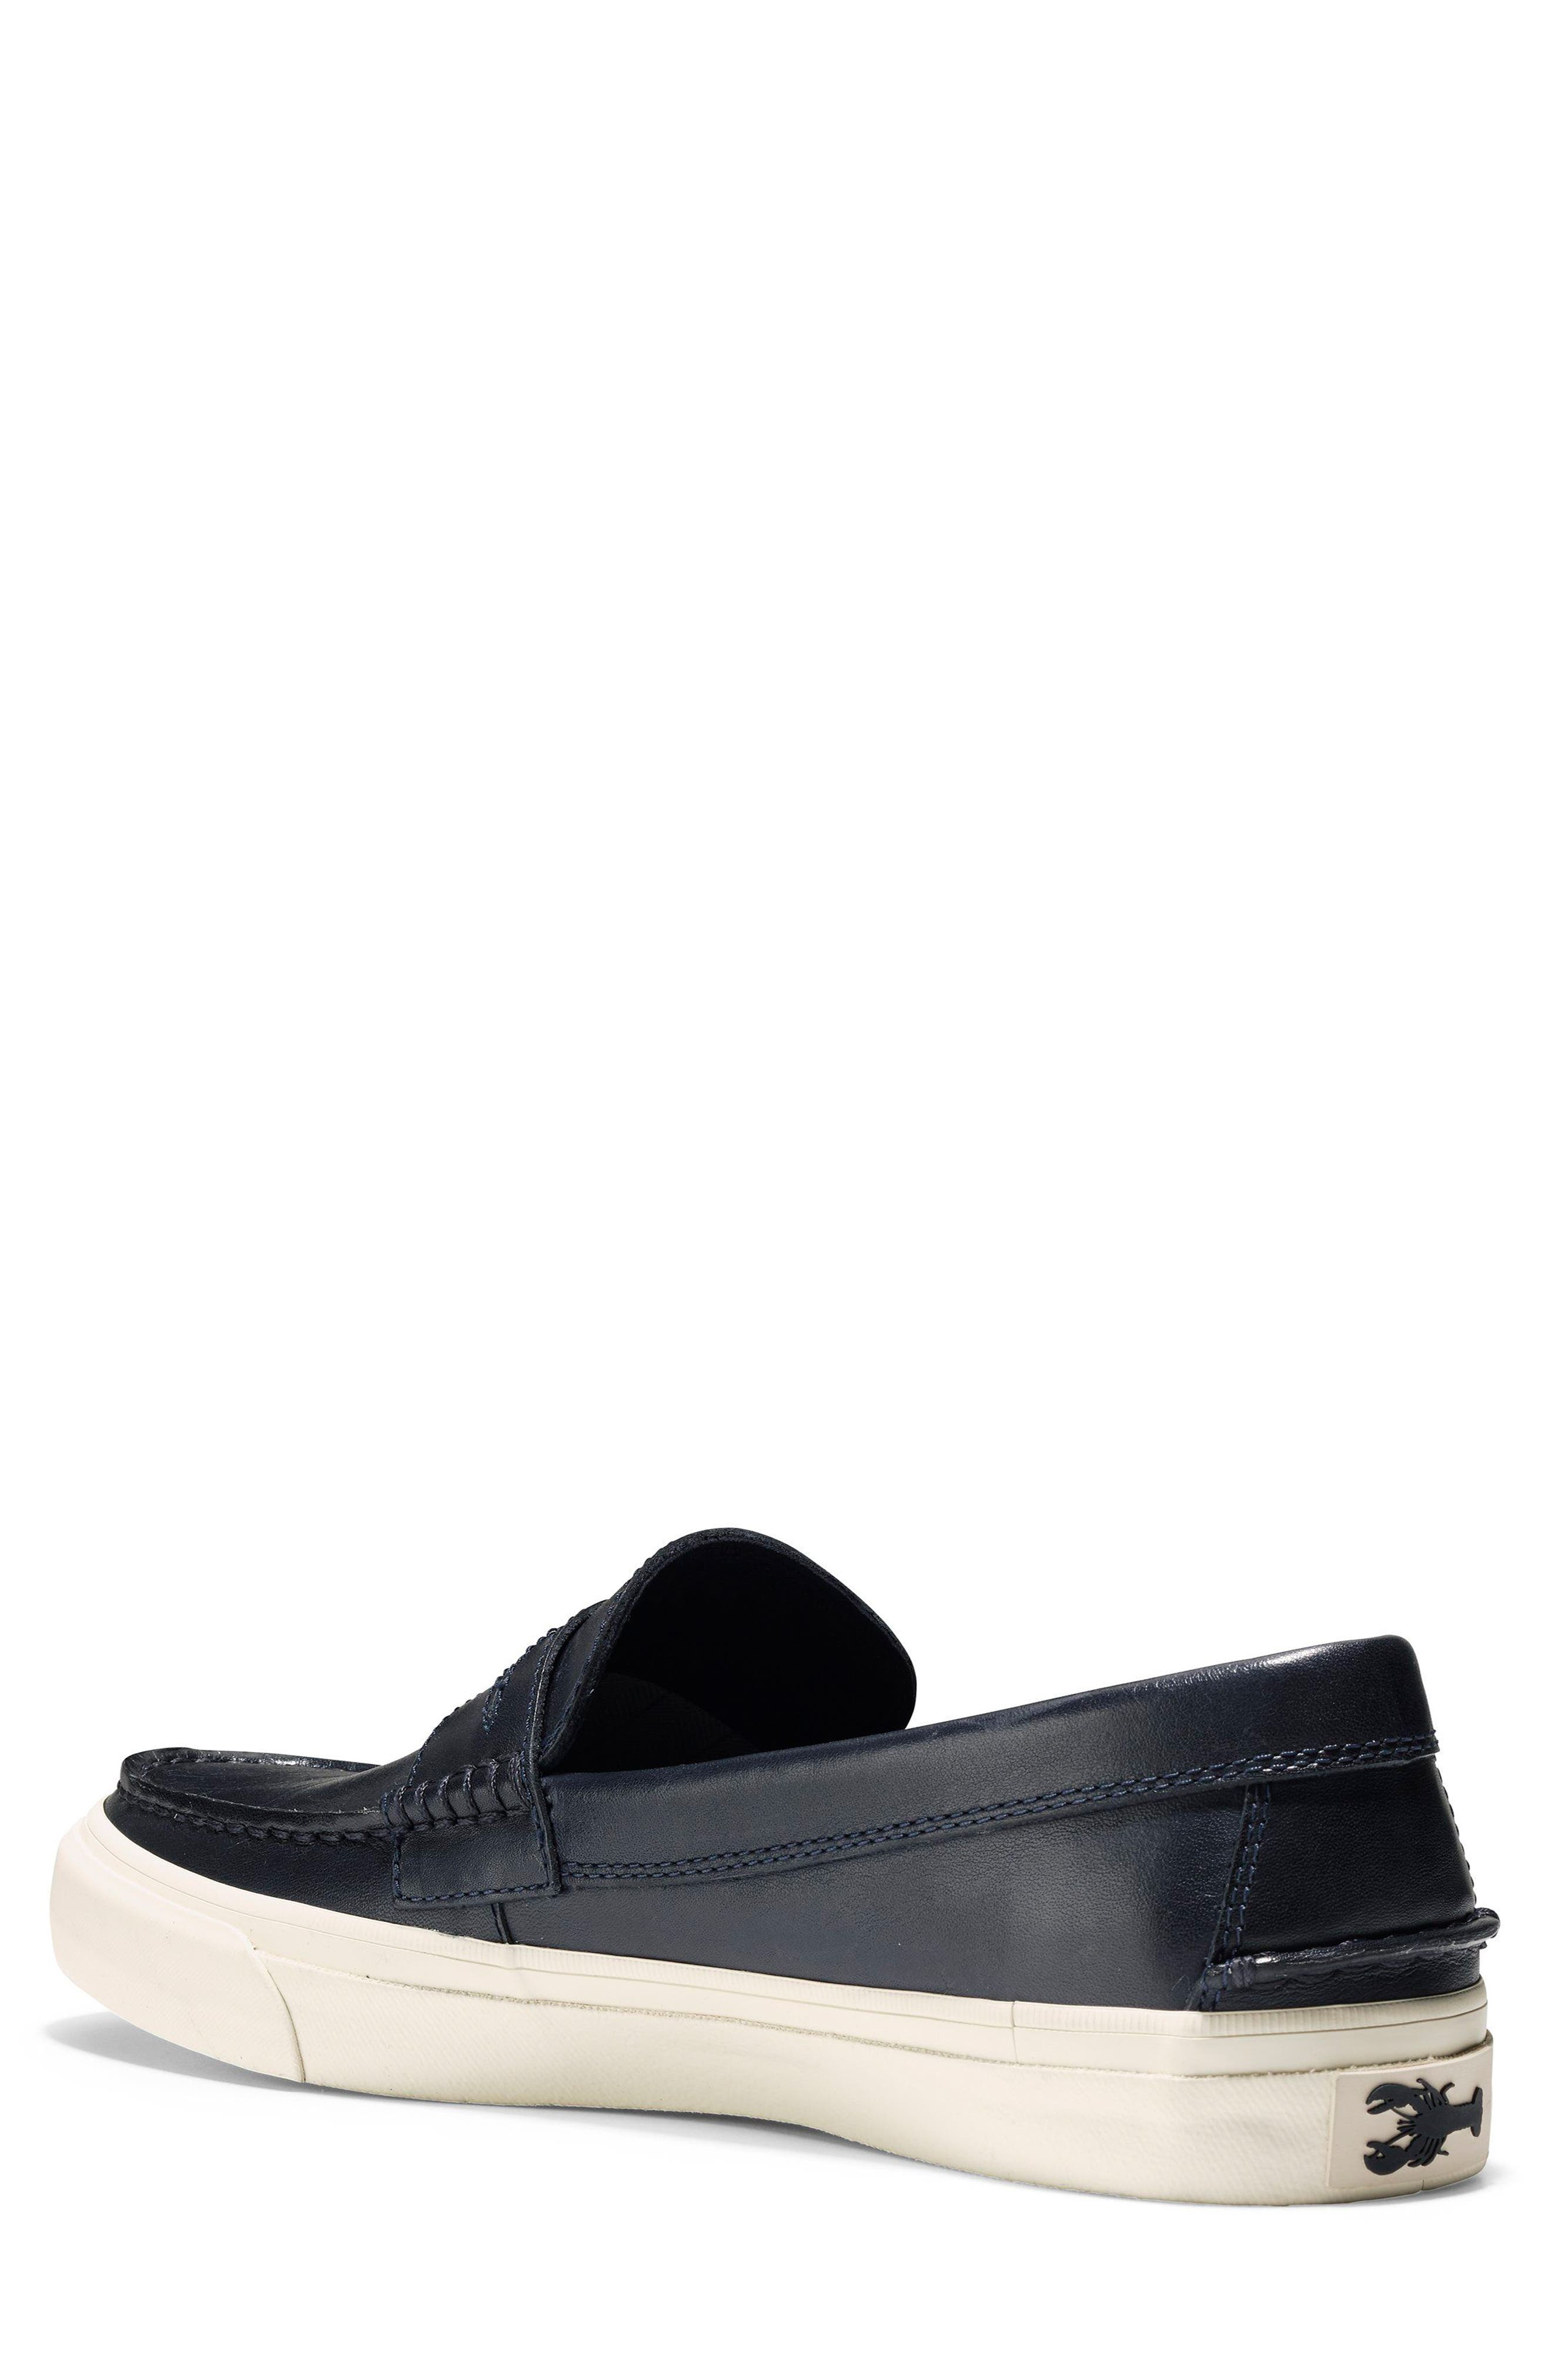 Pinch Weekend LX Penny Loafer,                             Alternate thumbnail 18, color,